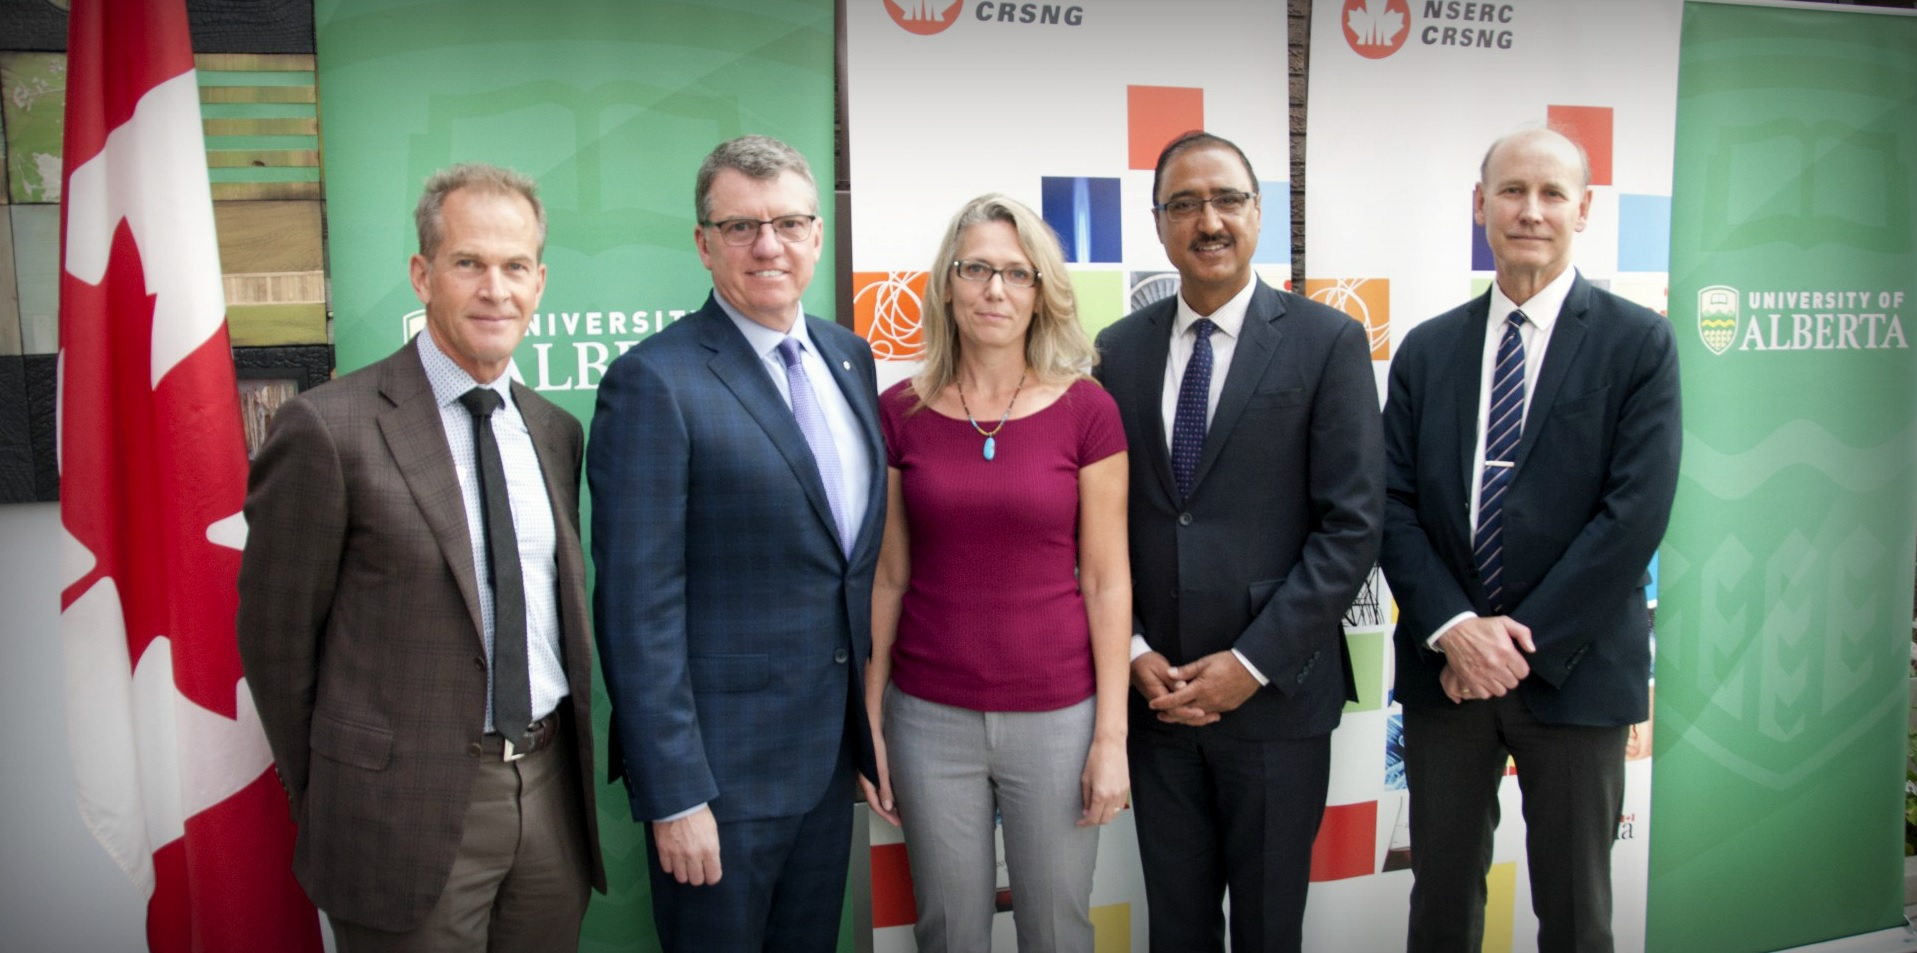 President Turpin attends an NSERC funding announcement in September, 2017